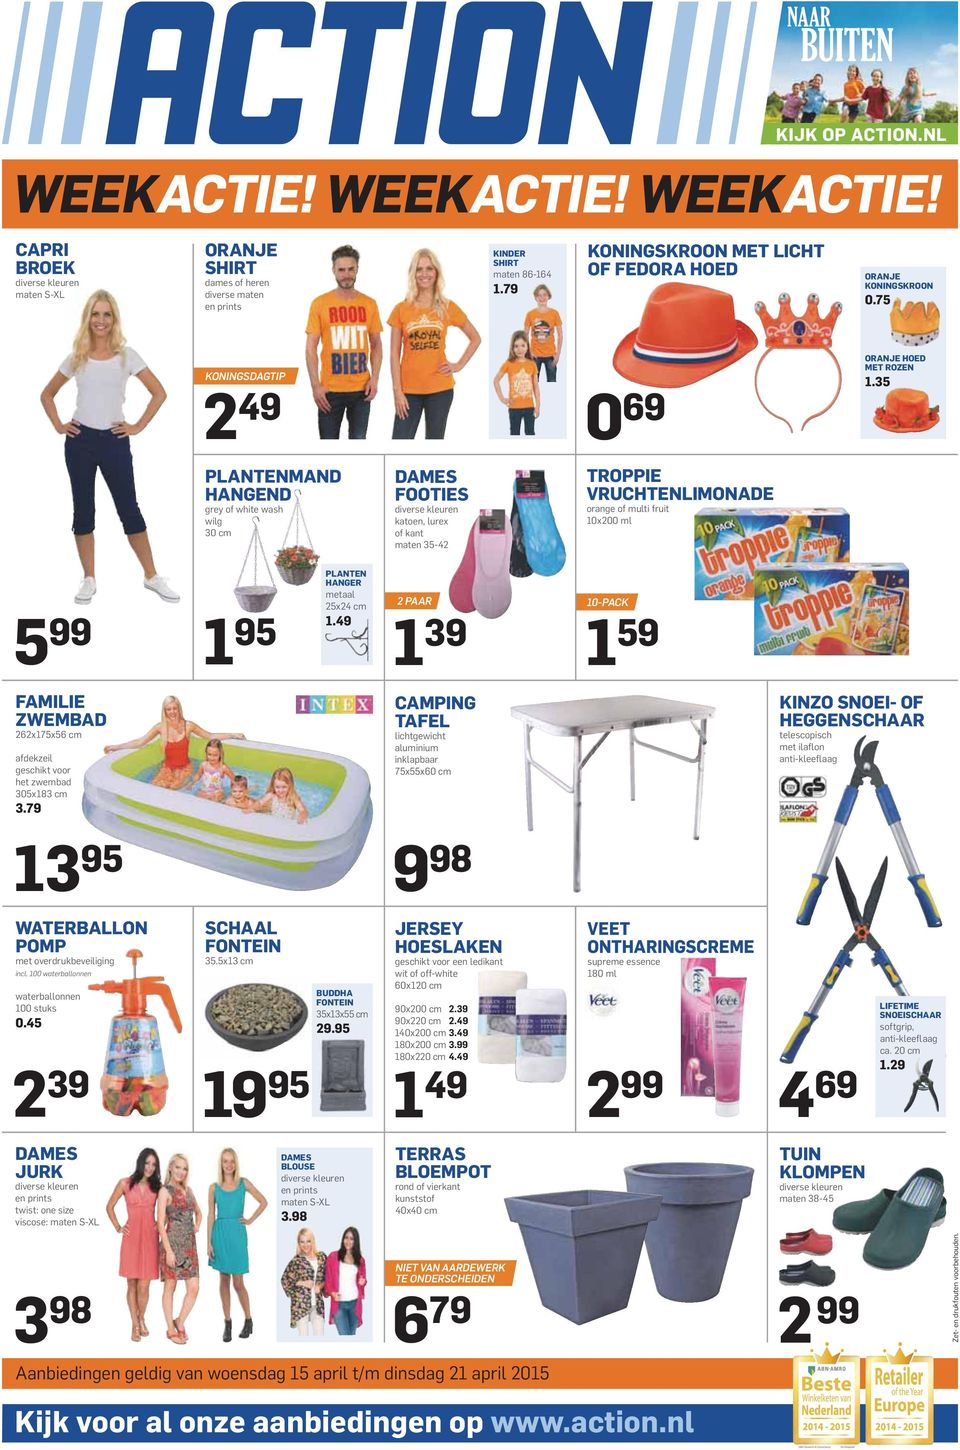 35 PLANTENMAND HANGEND grey of white wash wilg 30 cm DAMES FOOTIES diverse kleuren katoen, lurex of kant maten 35-42 TROPPIE VRUCHTENLIMONADE orange of multi fruit 10x200 ml 5 99 1 95 PLANTEN HANGER